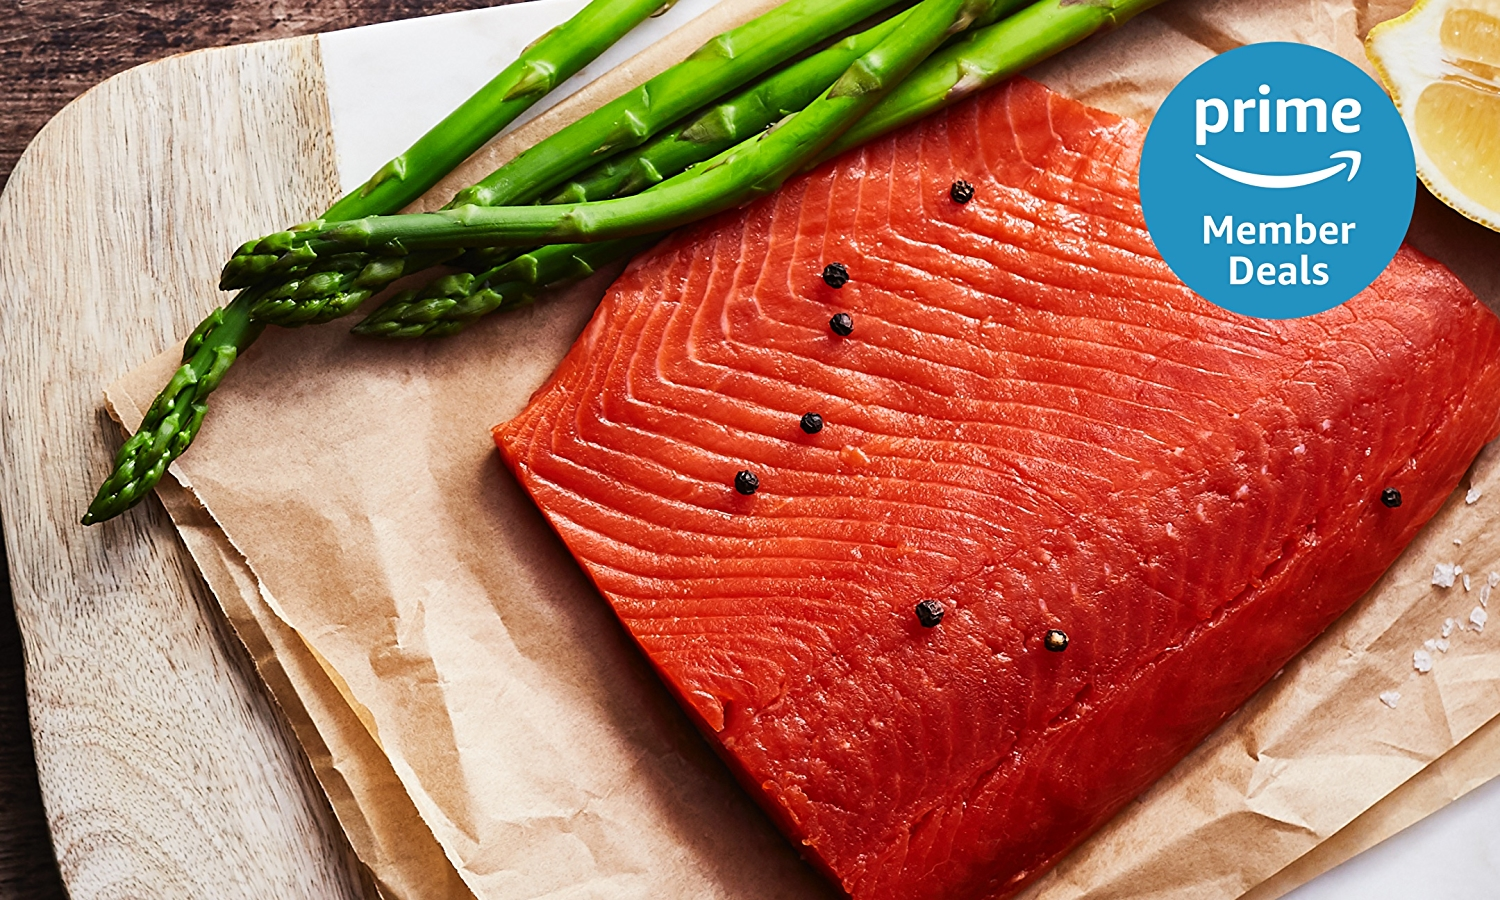 Prime Member Deal Logo in top right corner, sockeye salmon fillet on parchment paper in the bacjground